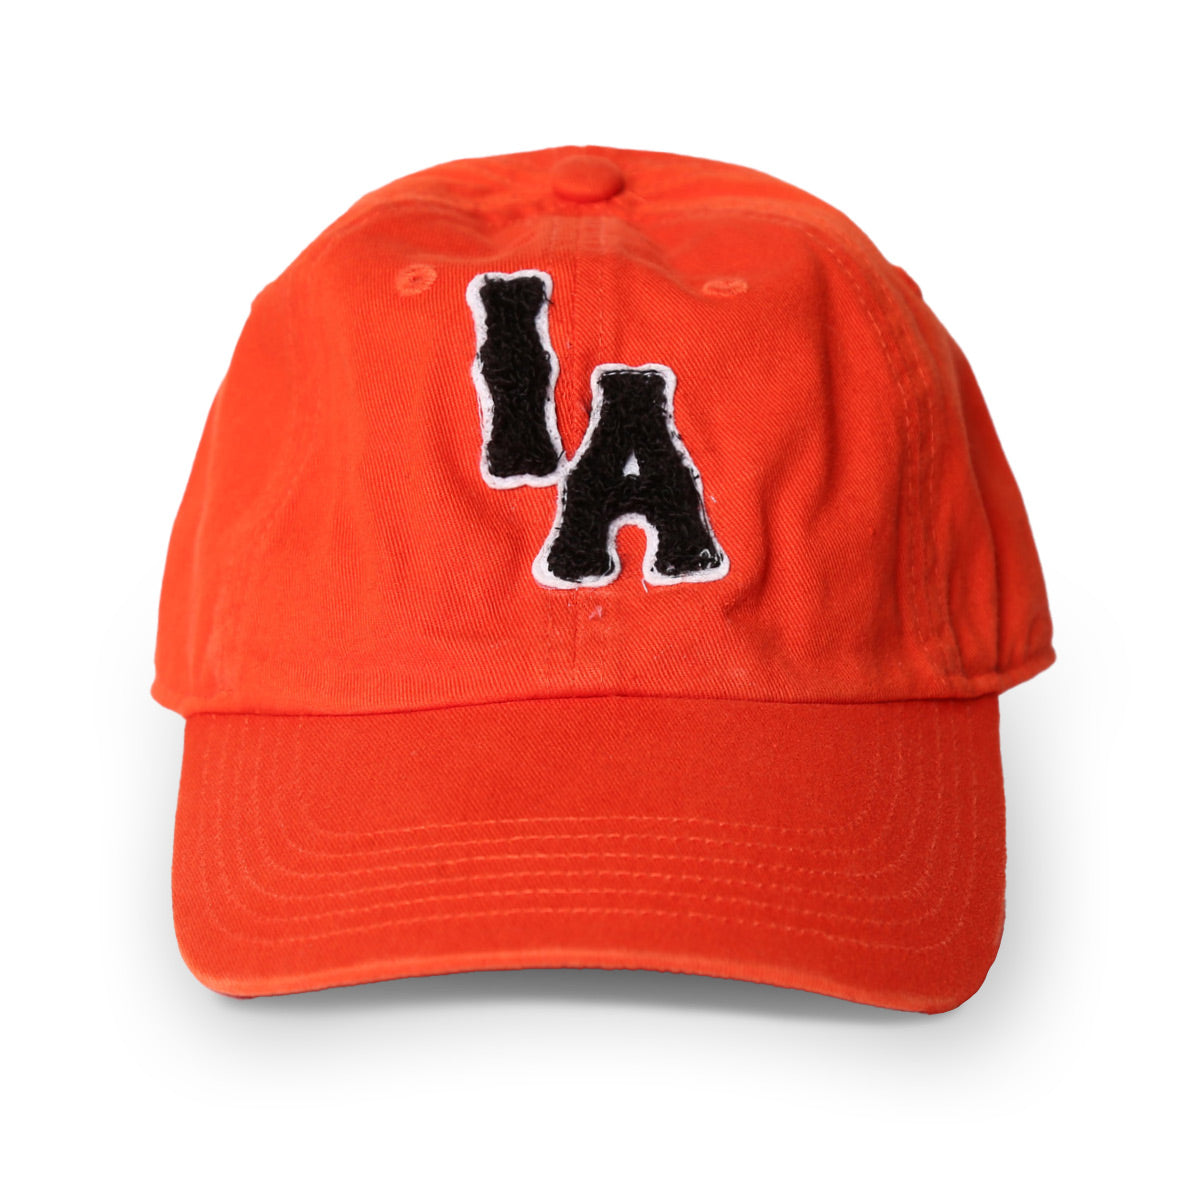 Iowa Vintage Orange Dad Hat